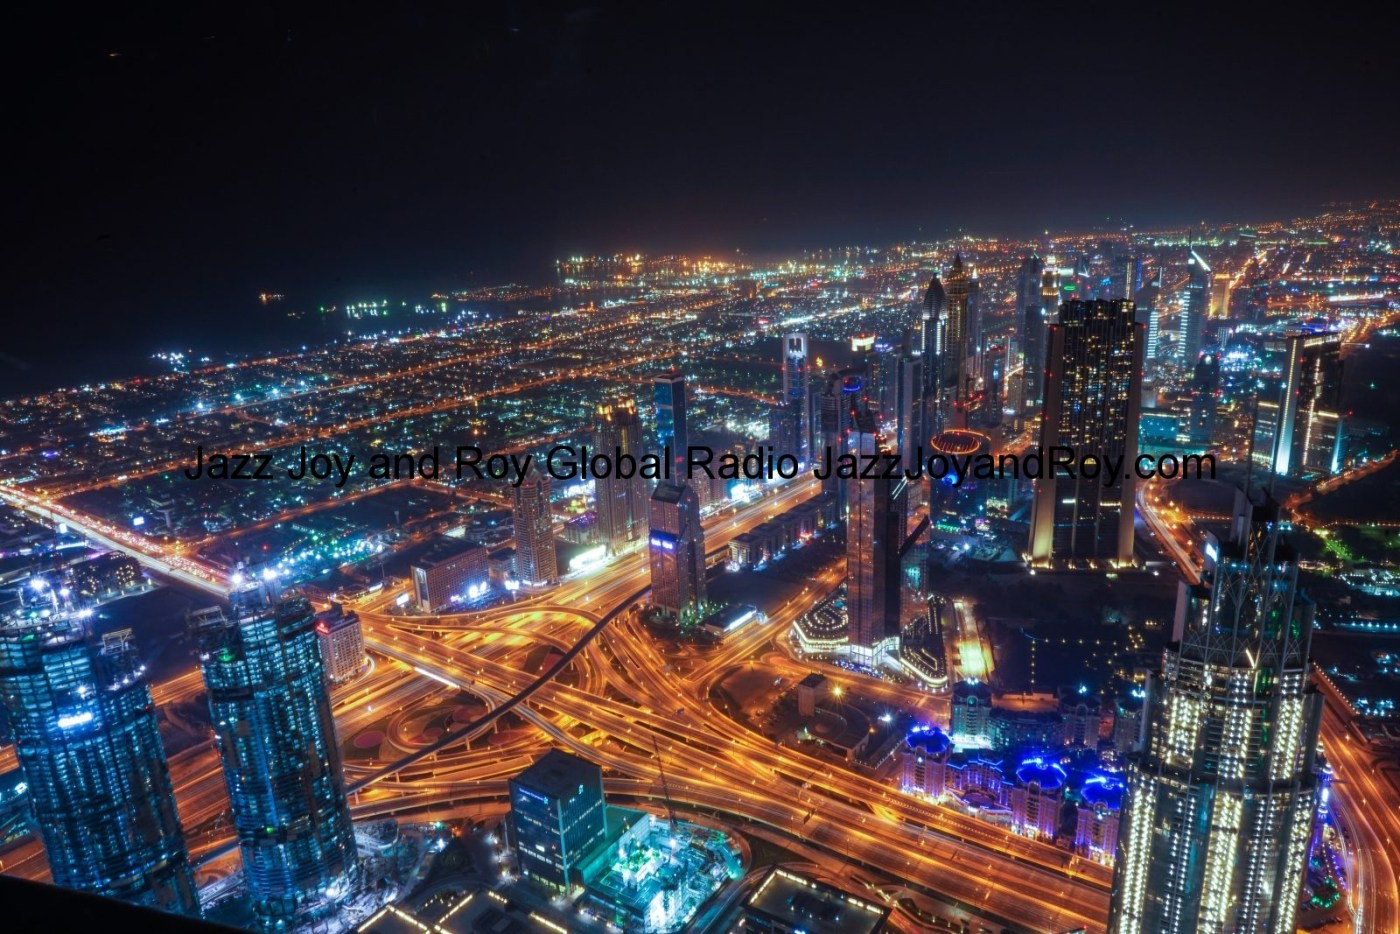 cityscape of lighted building during nighttime